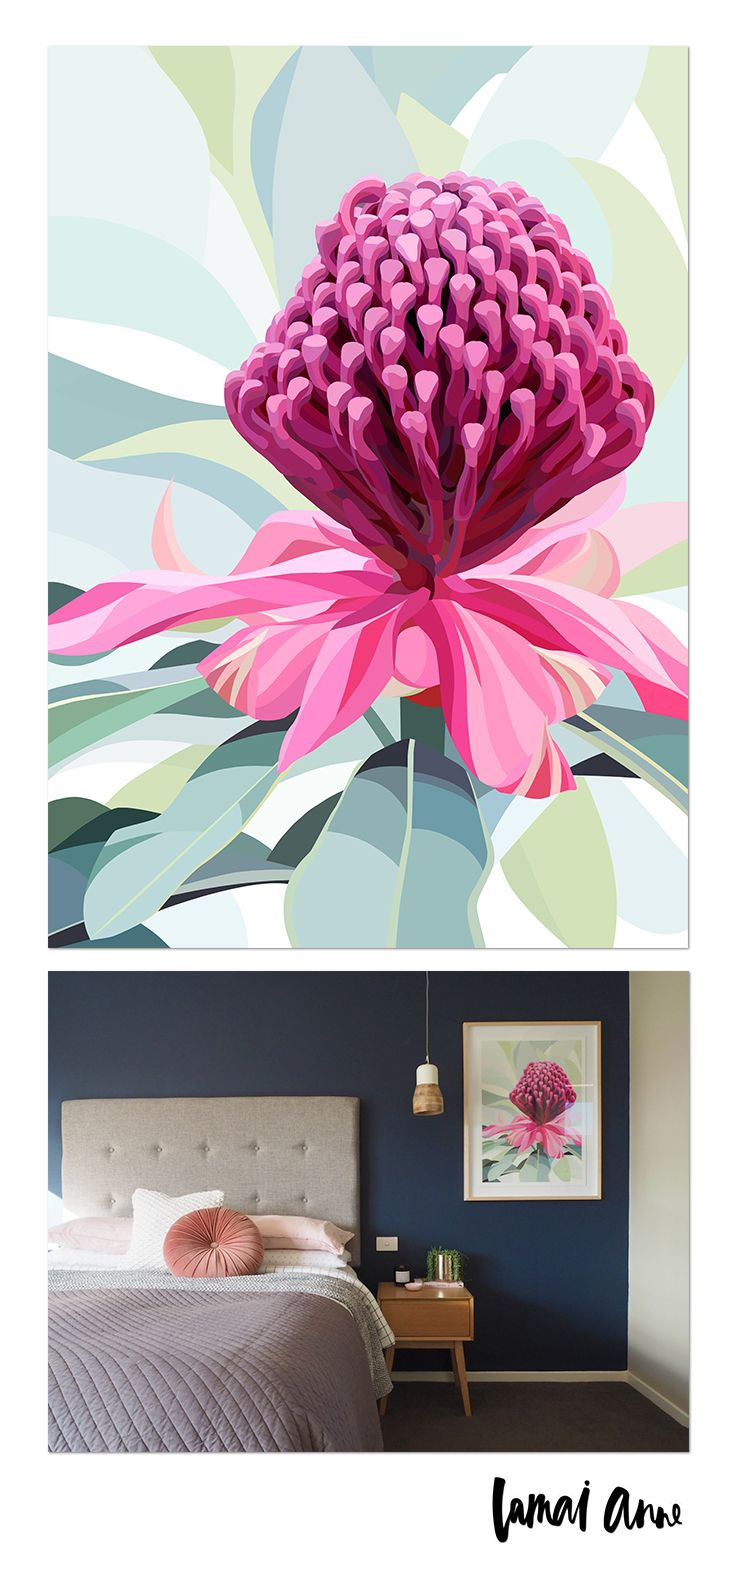 Waratah limited edition giclee art print by Australian artist Lamai Anne. What a wonderful way of bringing the Australian outdoors and a real pop of colour into your home. Lamai's artwork is a collaboration of Native Flora and Fauna that encompasses her home and surroundings. Her illustrations of Australian Natives are meticulously brought to life through her digital art, and the composition between the seasons to create vivid, colourful and eye catching pieces.